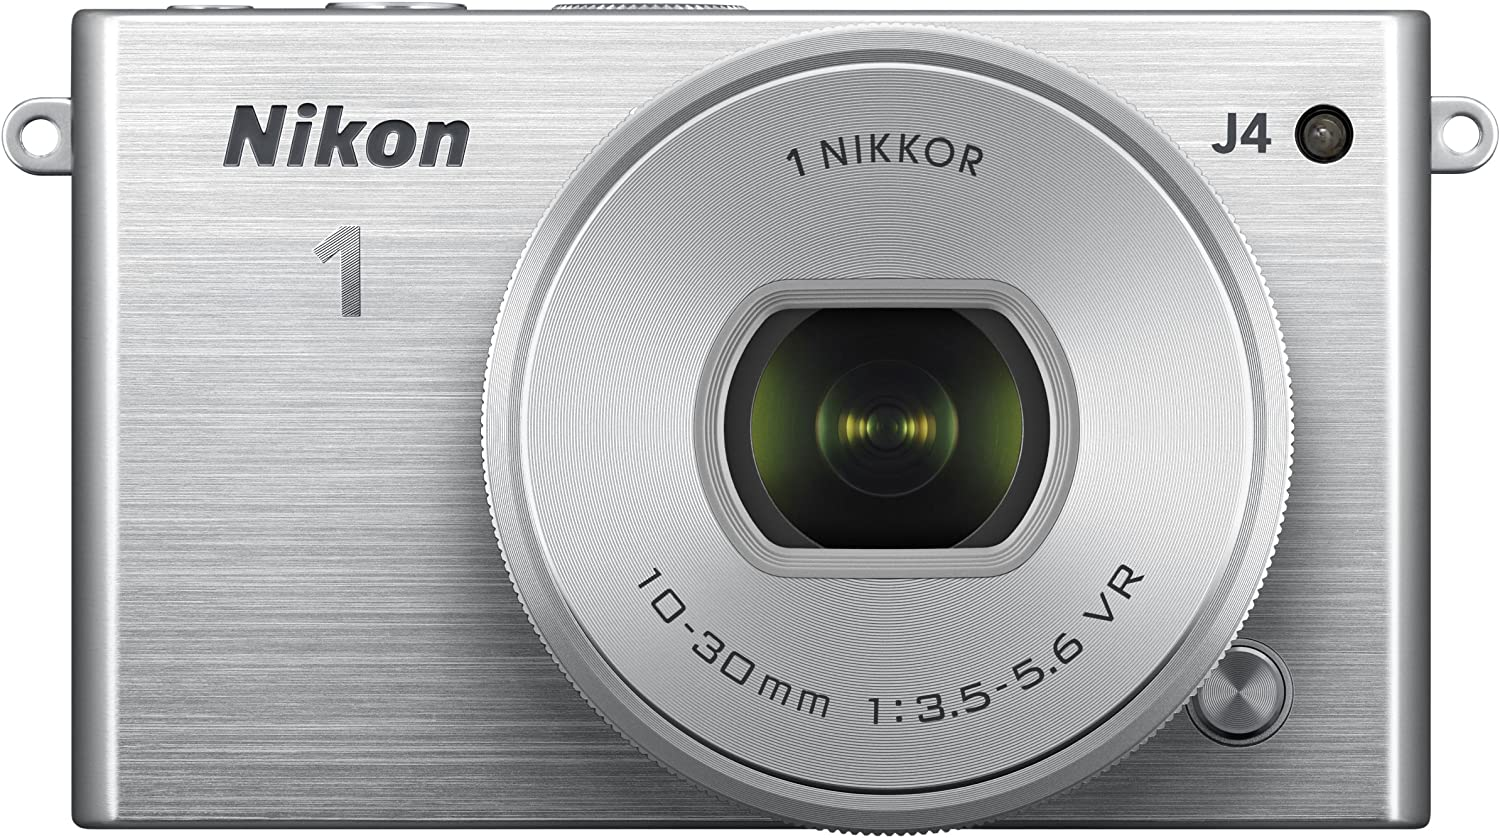 Nikon 1 J4 Digital Camera Selling with Zoo 10-30mm NIKKOR PD Quantity limited f 3.5-5.6